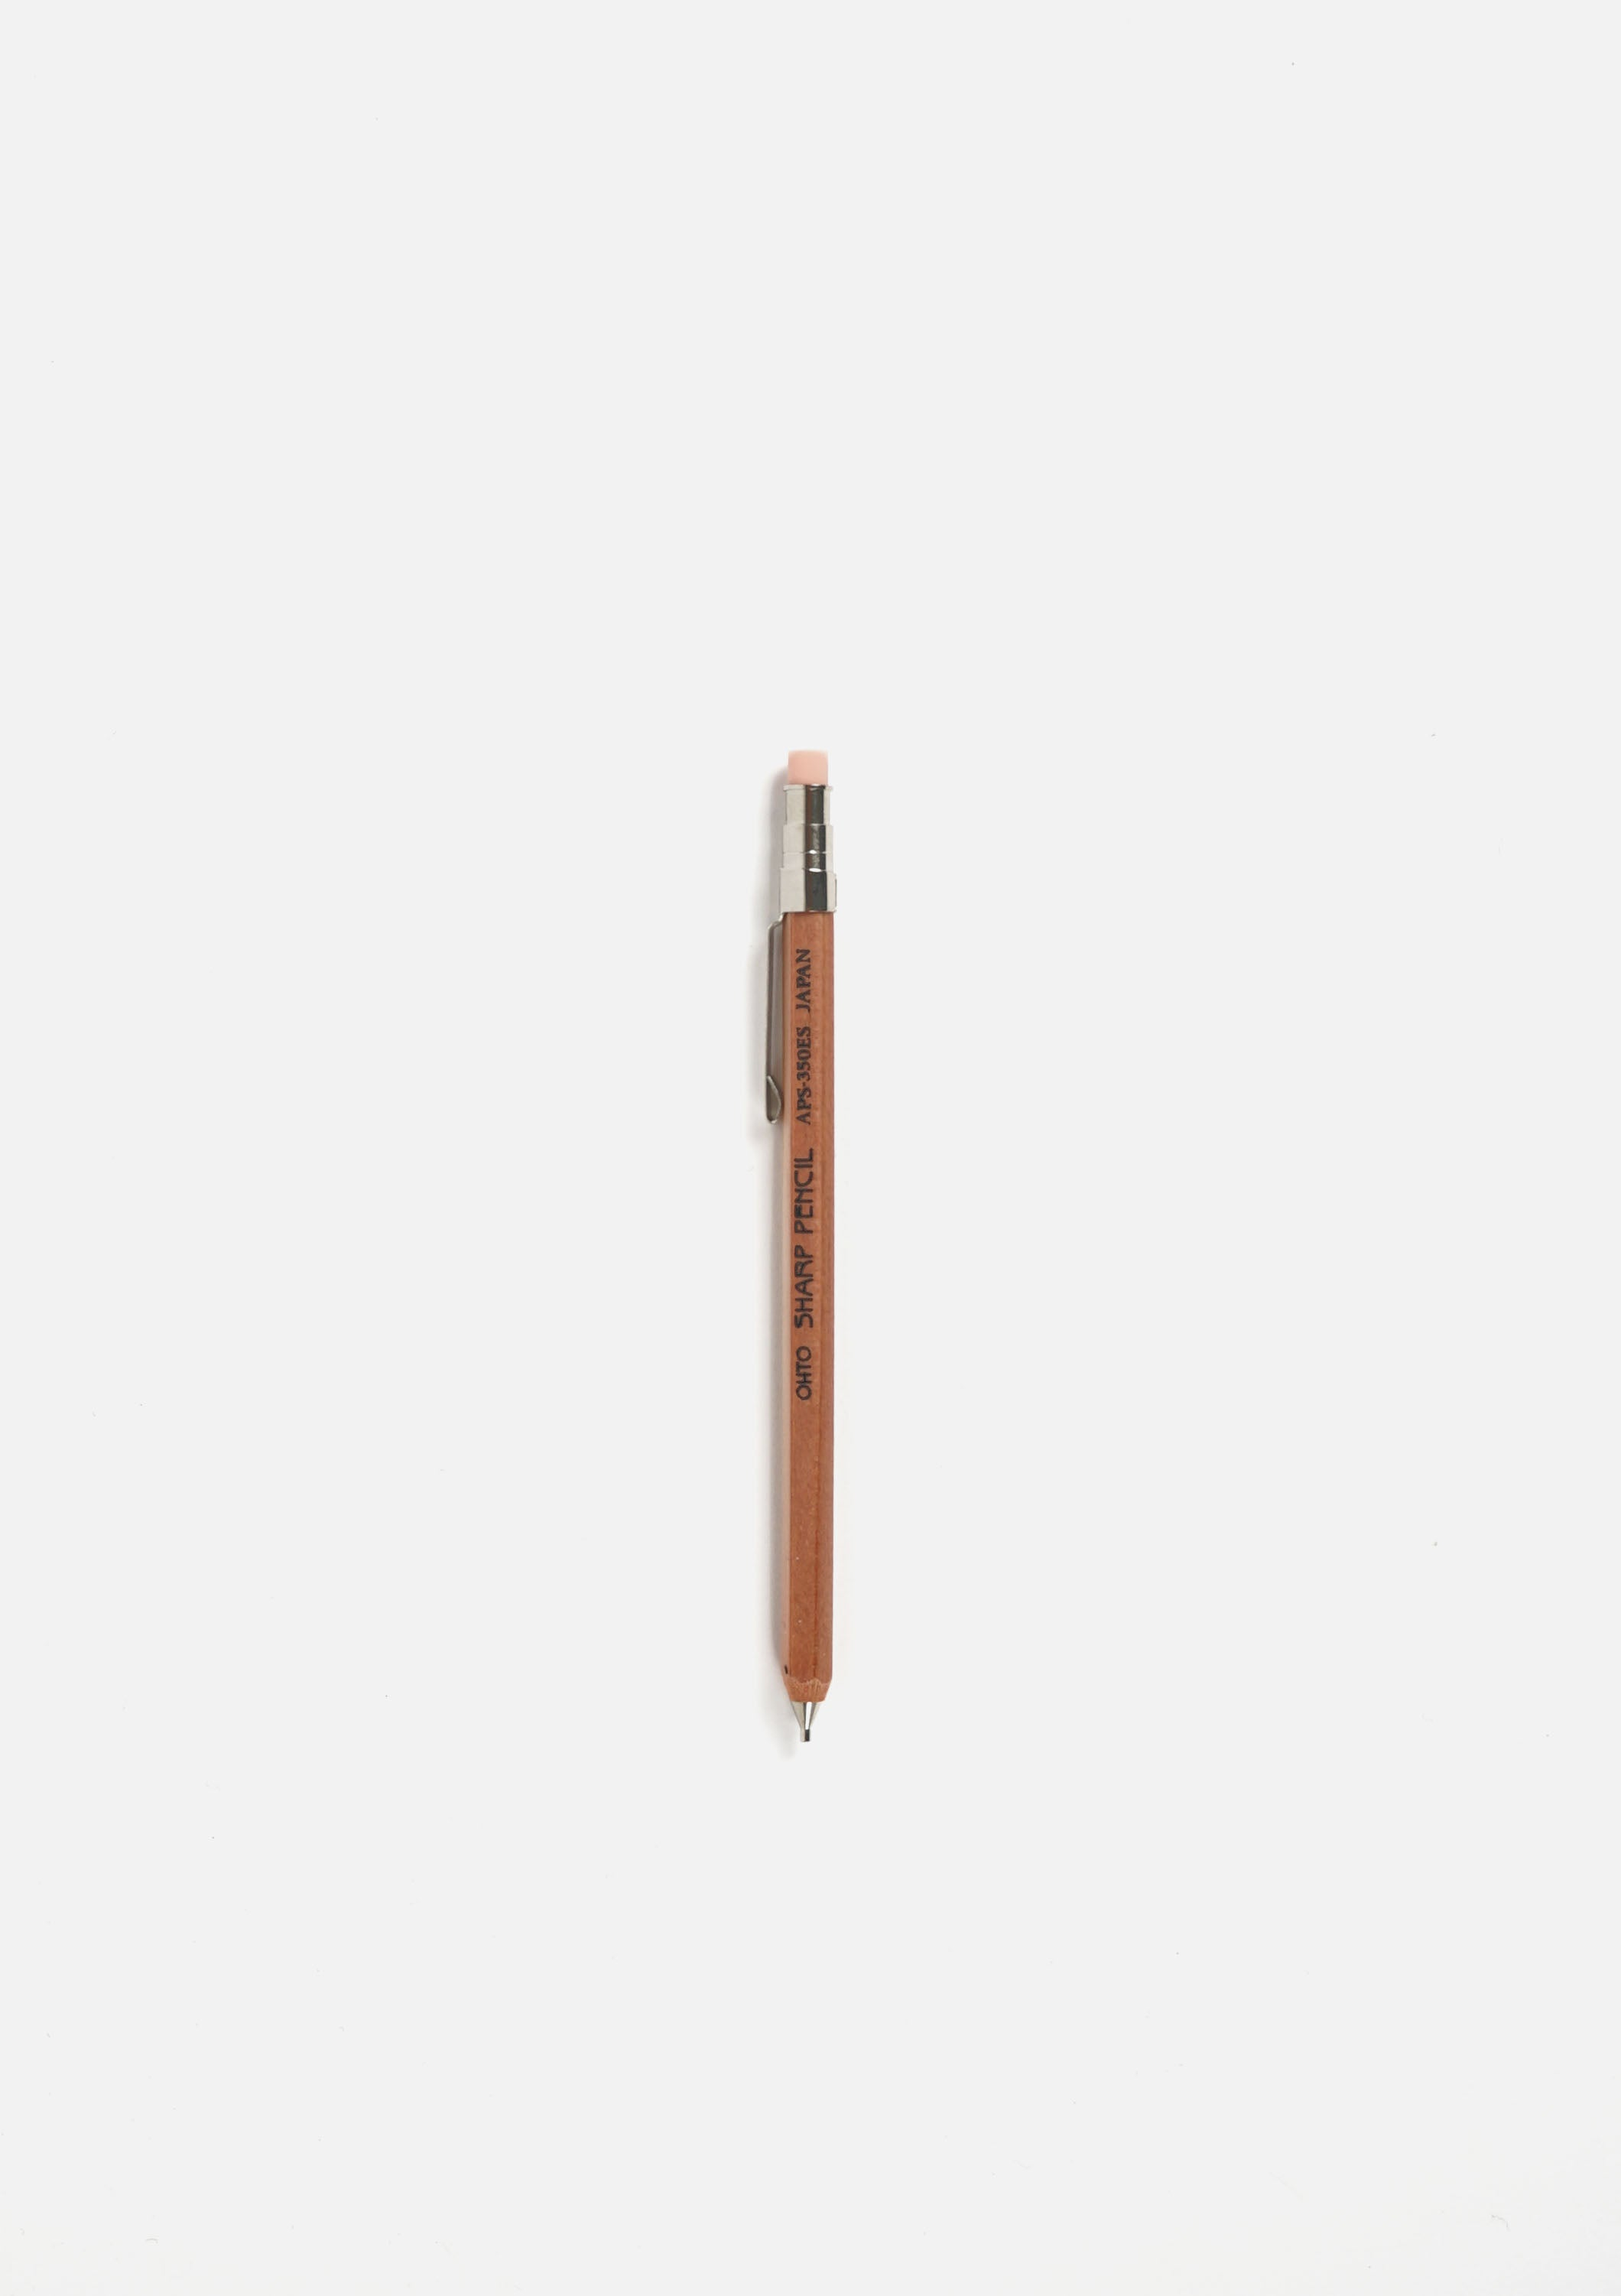 Sharp Mini Mechanical Pencil